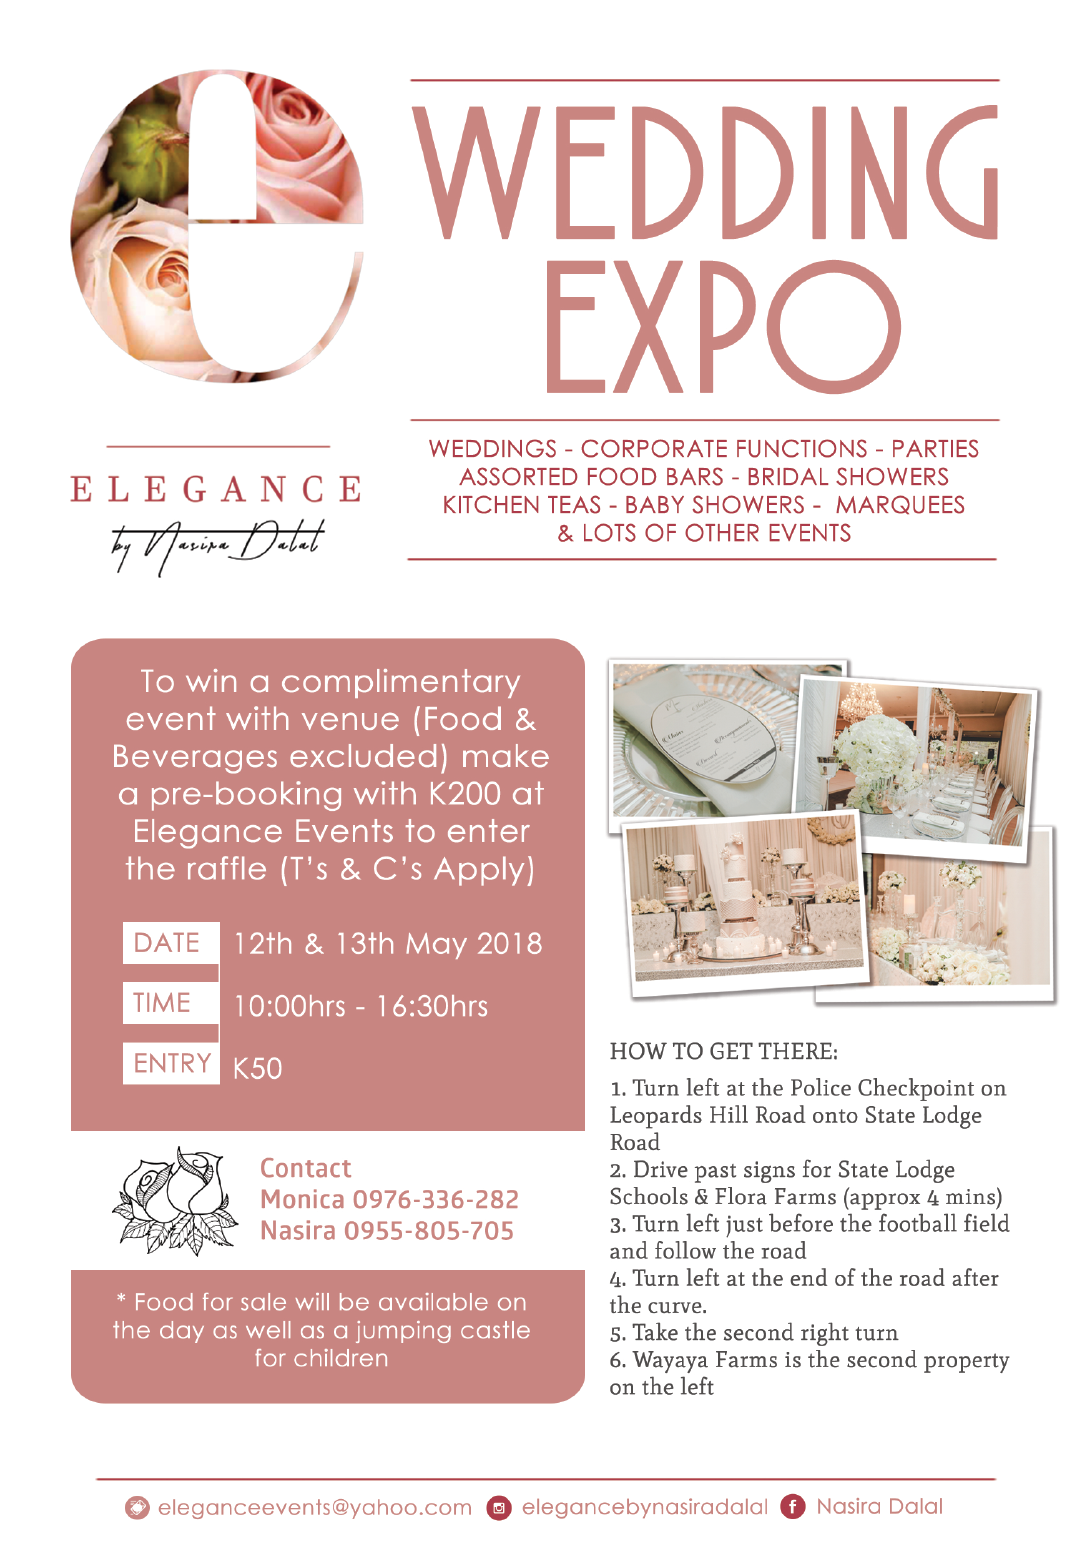 10 05 2018 - WEDDING EXPO THIS WEEKEND » Ad-dicts Ads